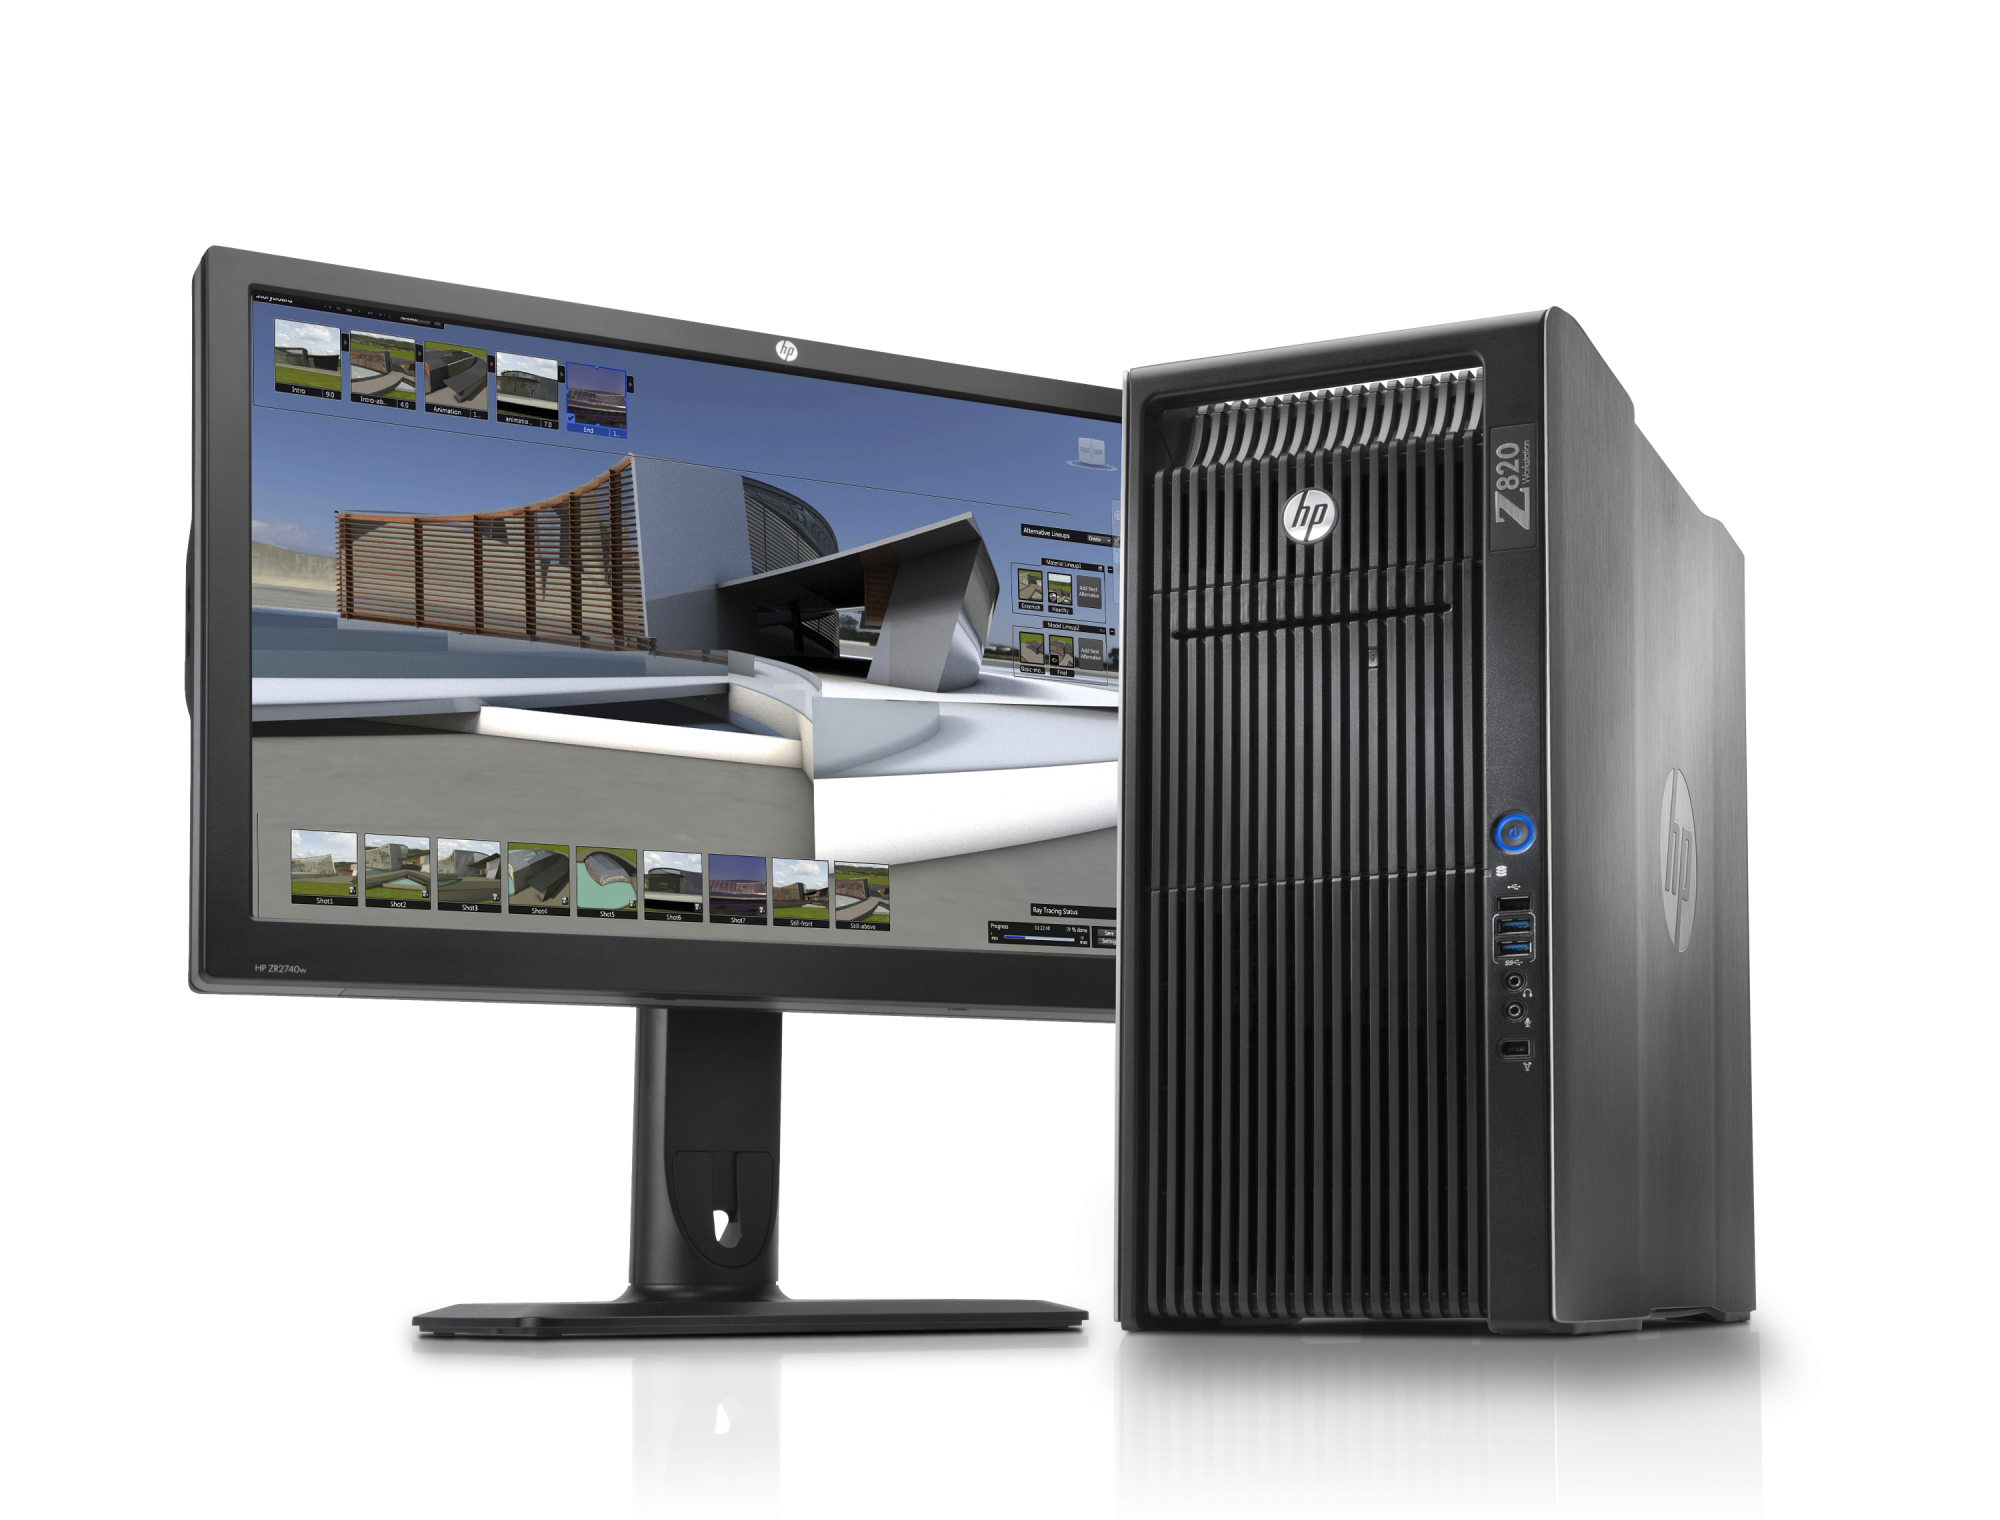 The HP Z820 workstation and ZR2440w display